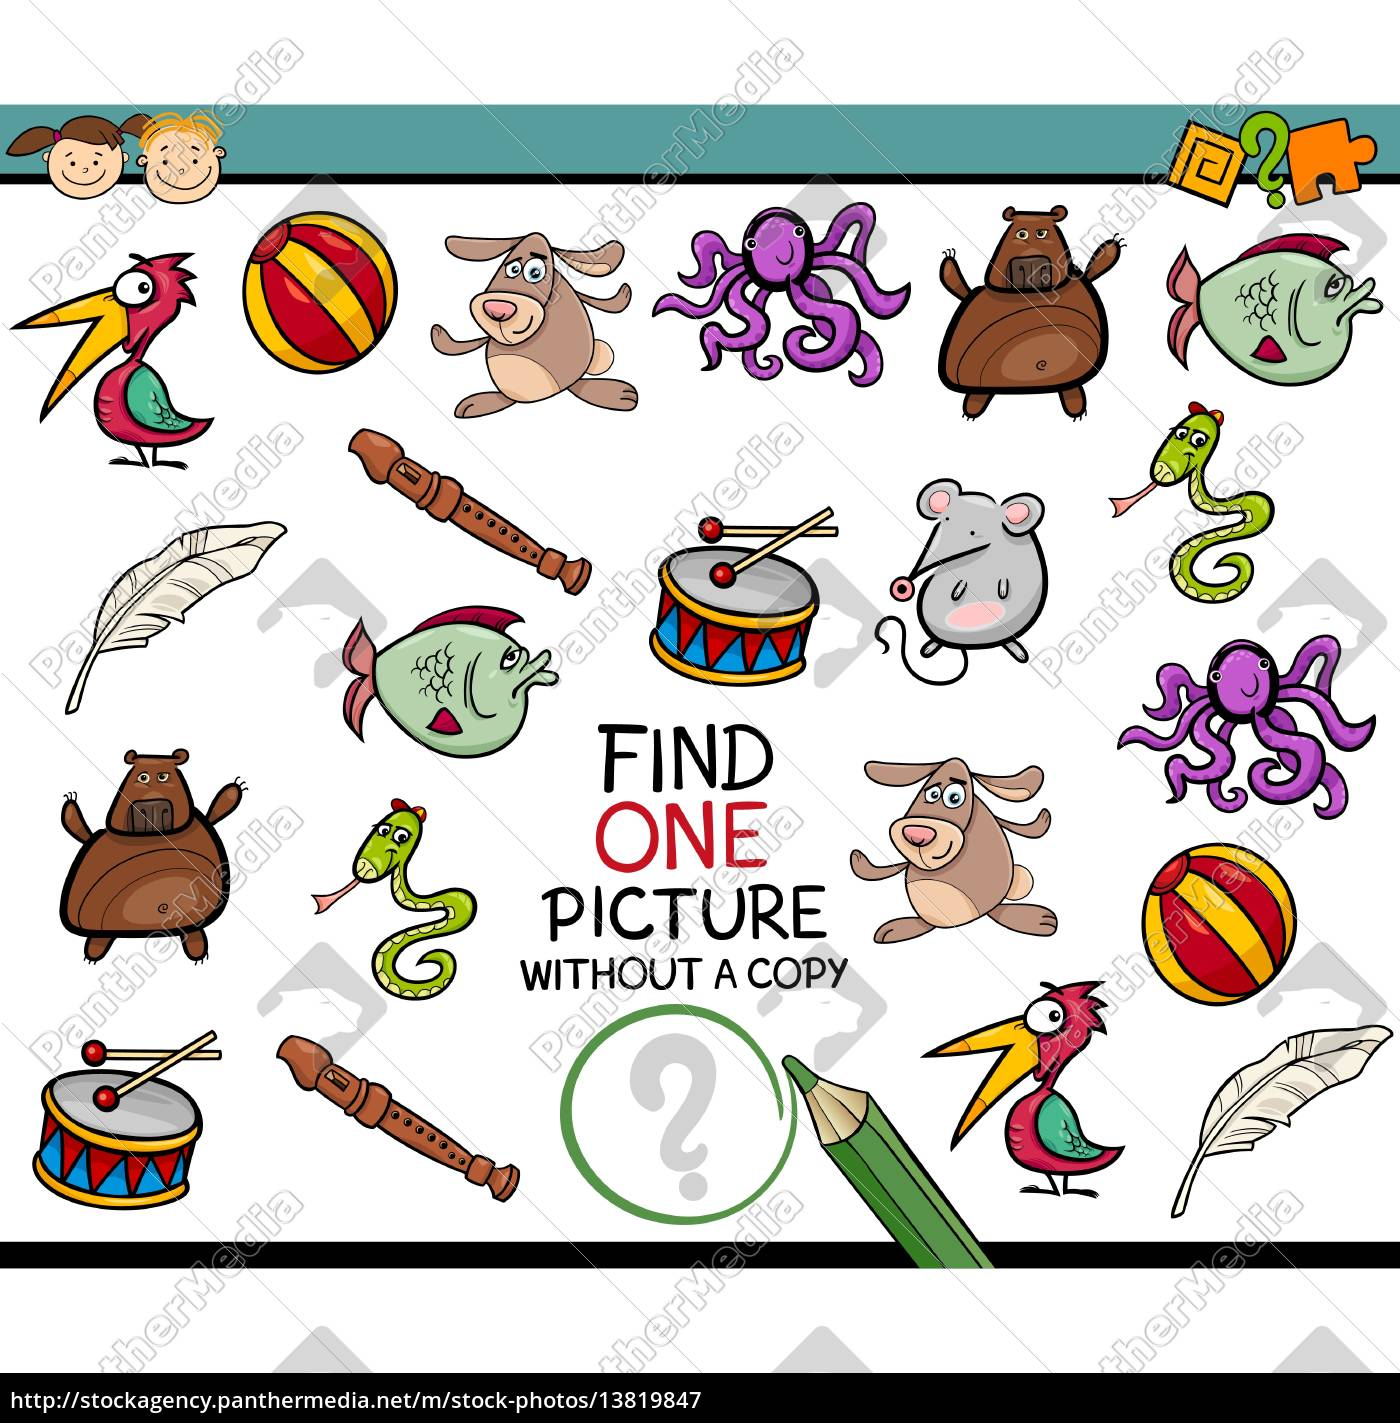 find, single, picture, game, cartoon - 13819847